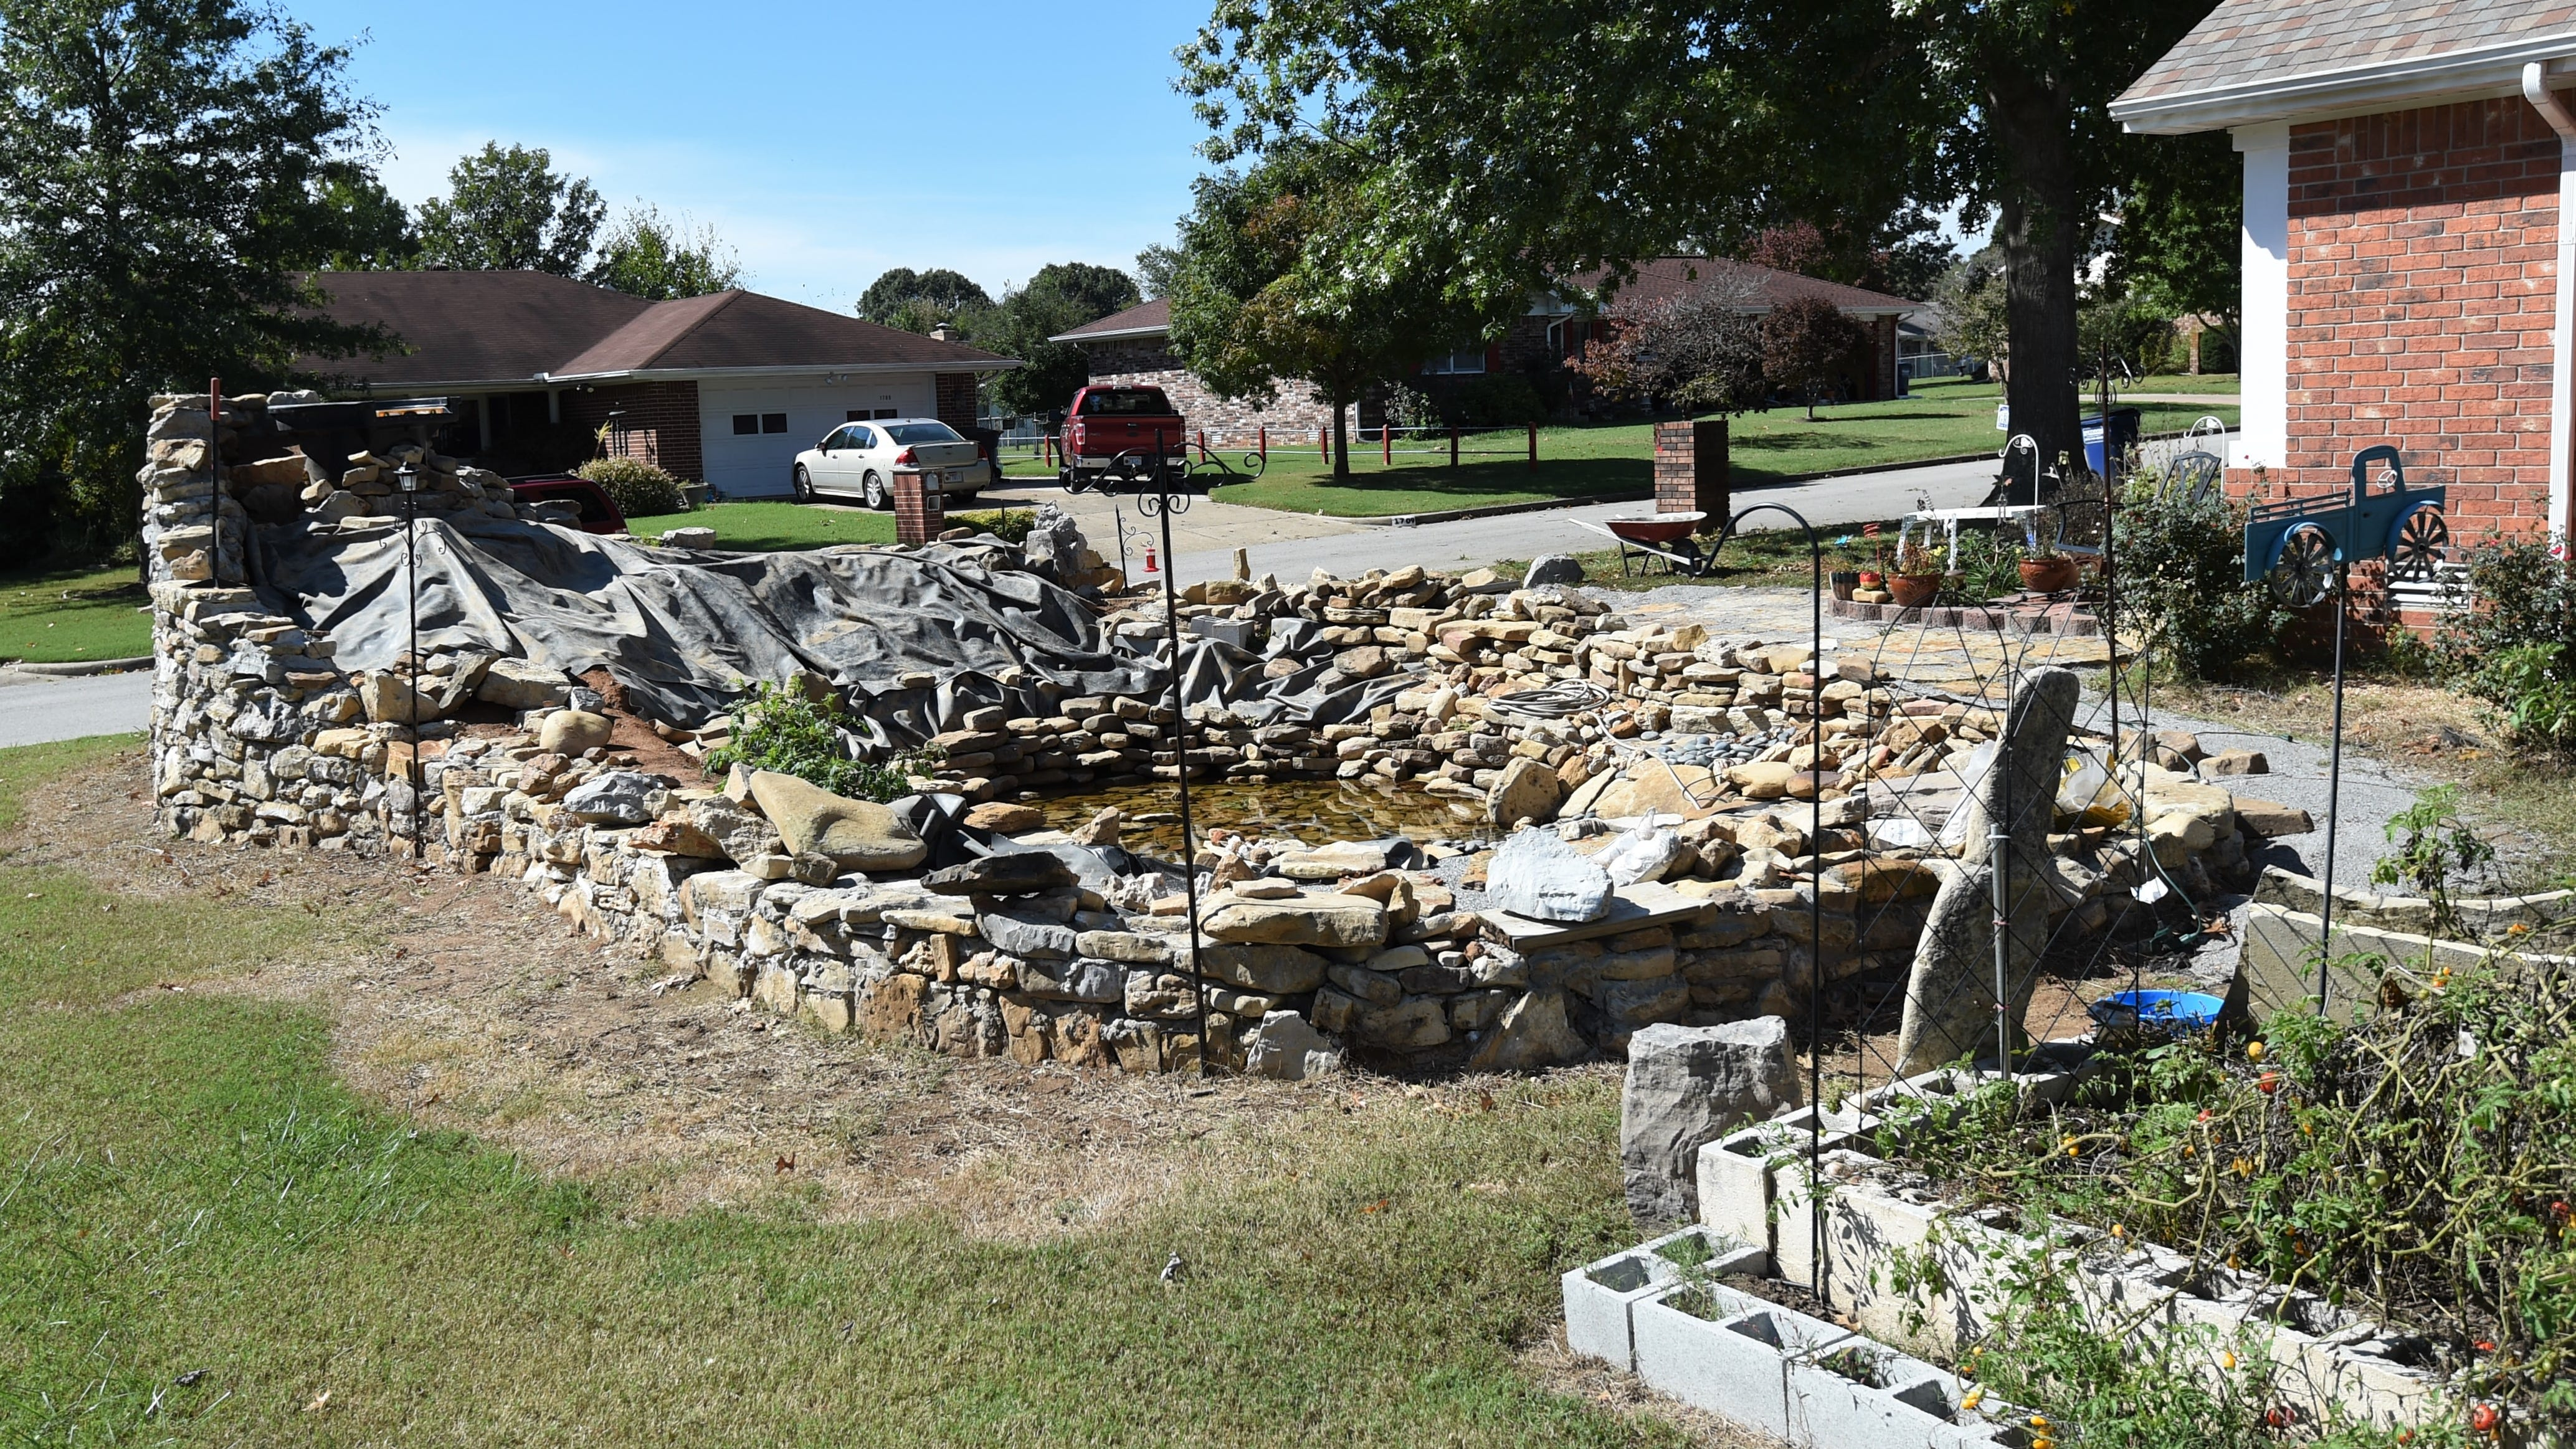 This large, unfinished garden pond must be torn down, the Mountain Home City Council agreed Thursday night.